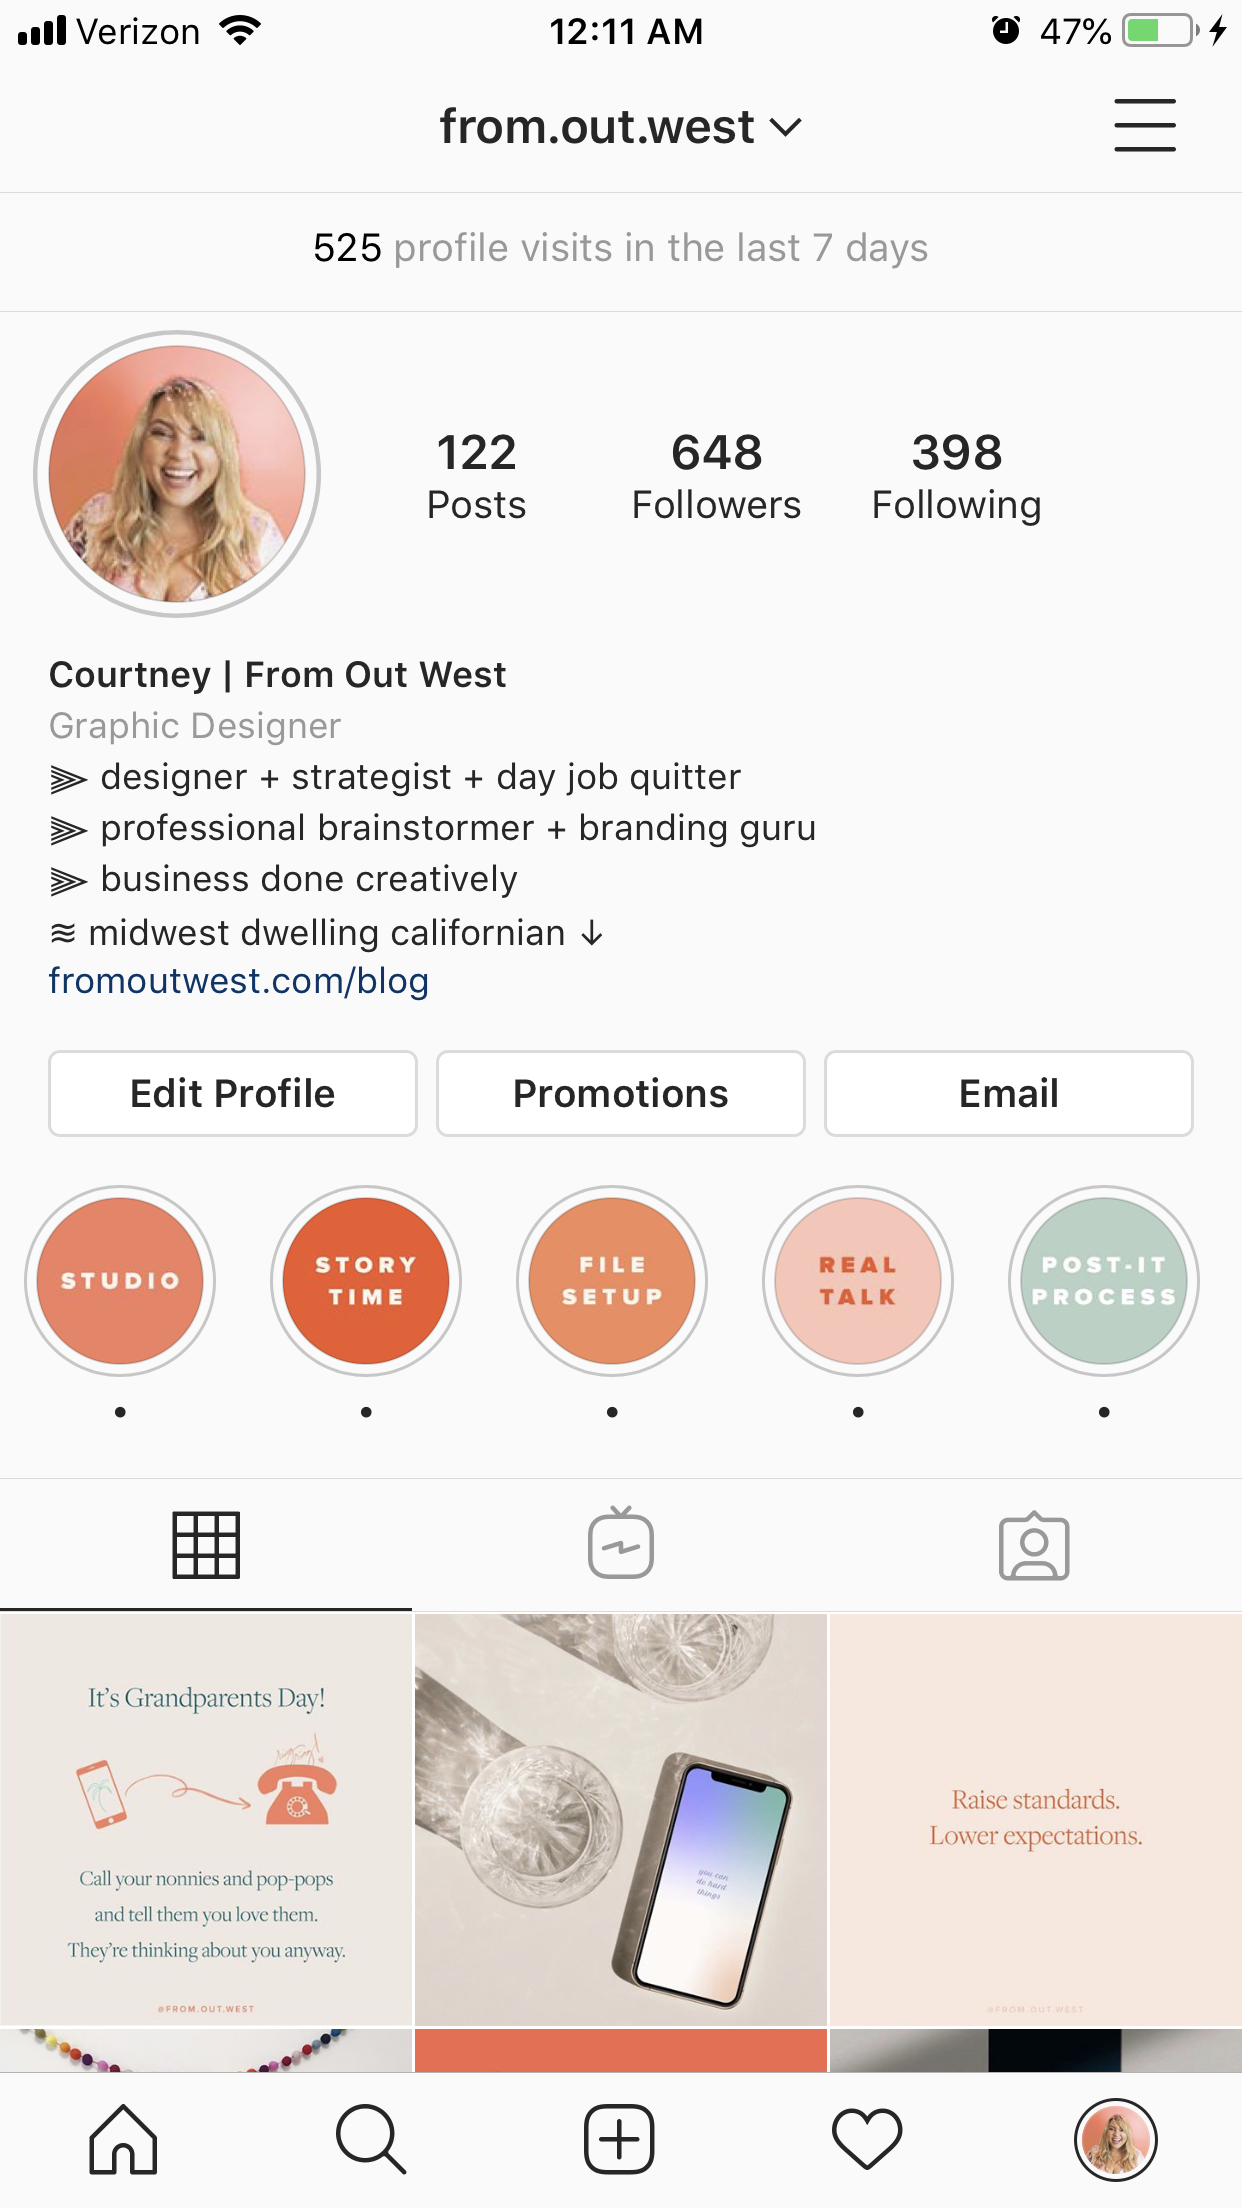 New Instagram Profile Screenshot From Out West